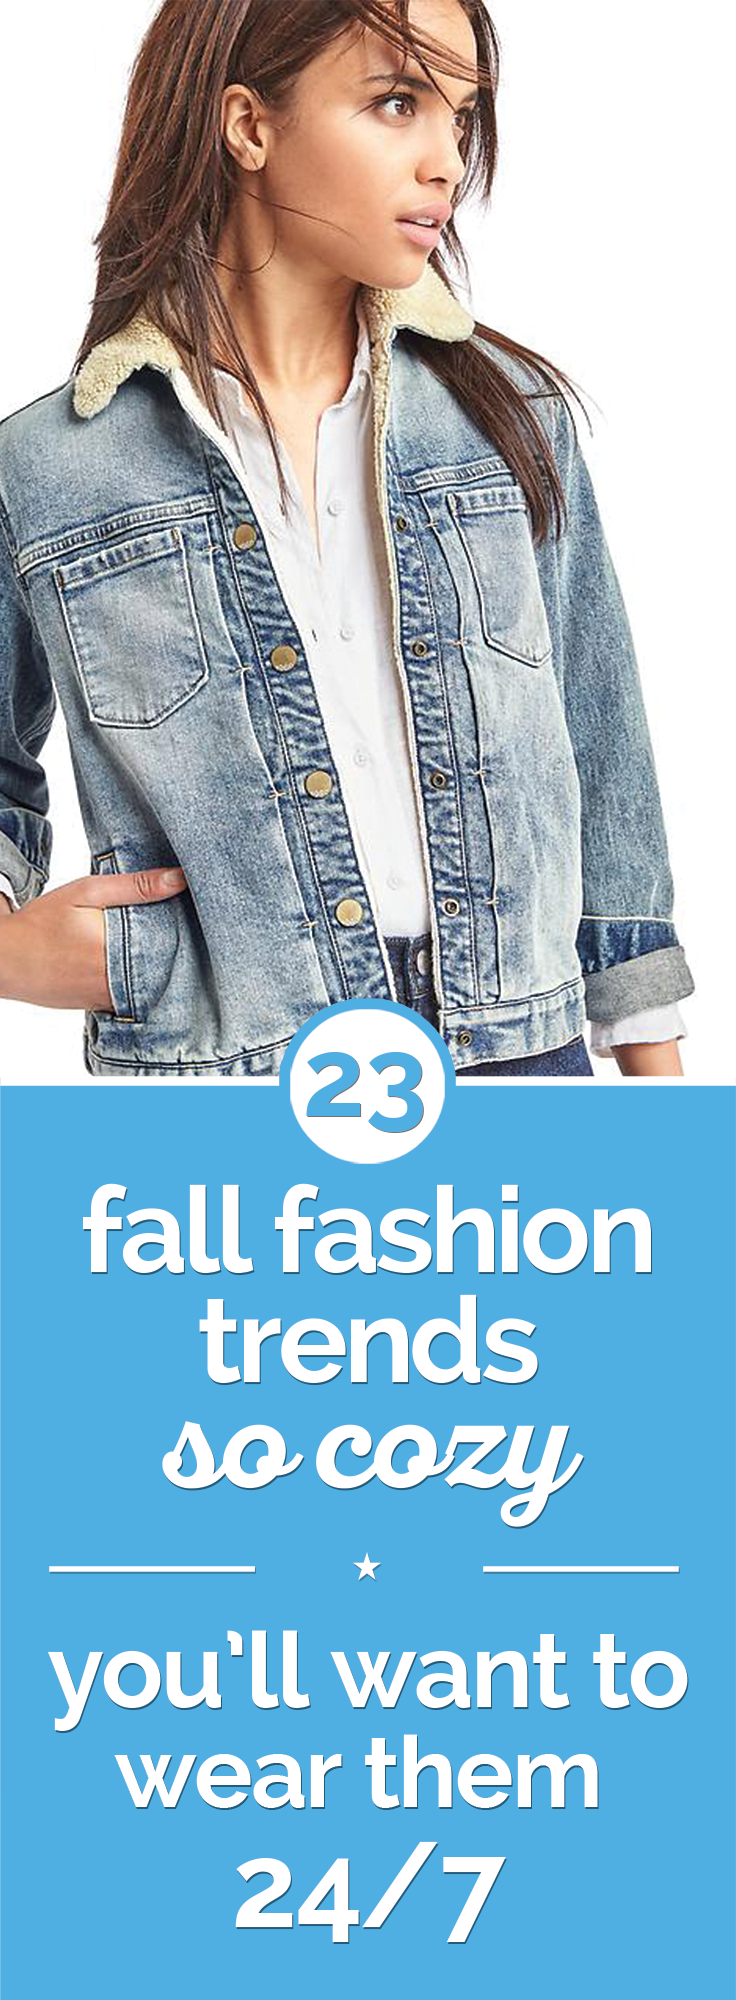 23 Fall Fashion Trends So Cozy You'll Want to Wear Them 24/7 | thegoodstuff